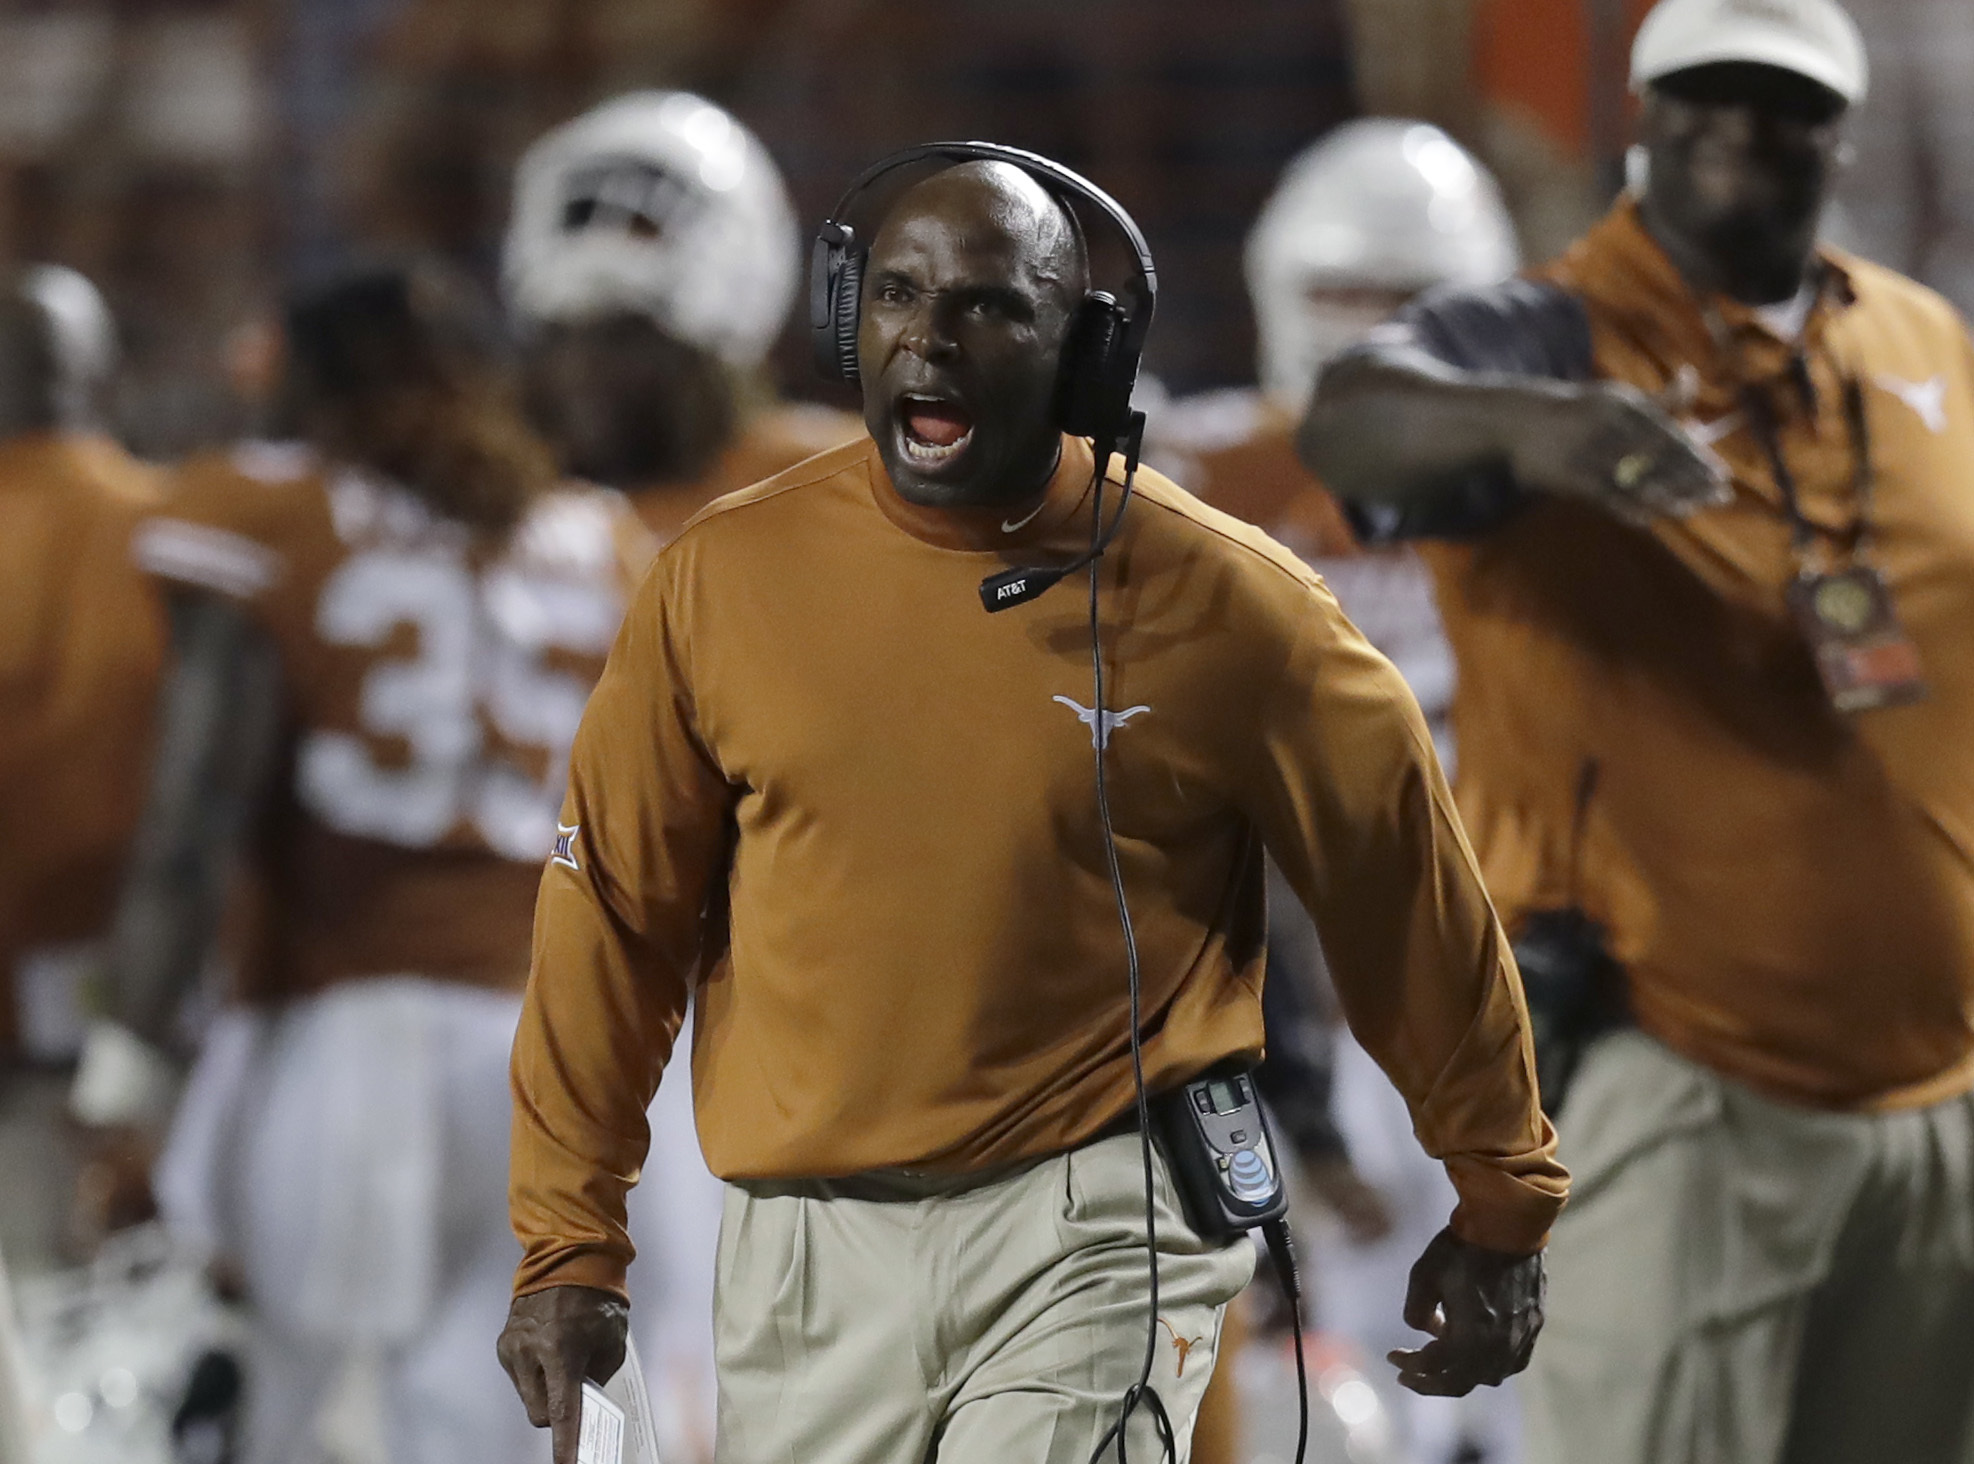 Texas head coach Charlie Strong calls to his players during the second half of an NCAA college football game against Notre Dame, Sunday, Sept. 4, 2016, in Austin, Texas. (AP Photo/Eric Gay)